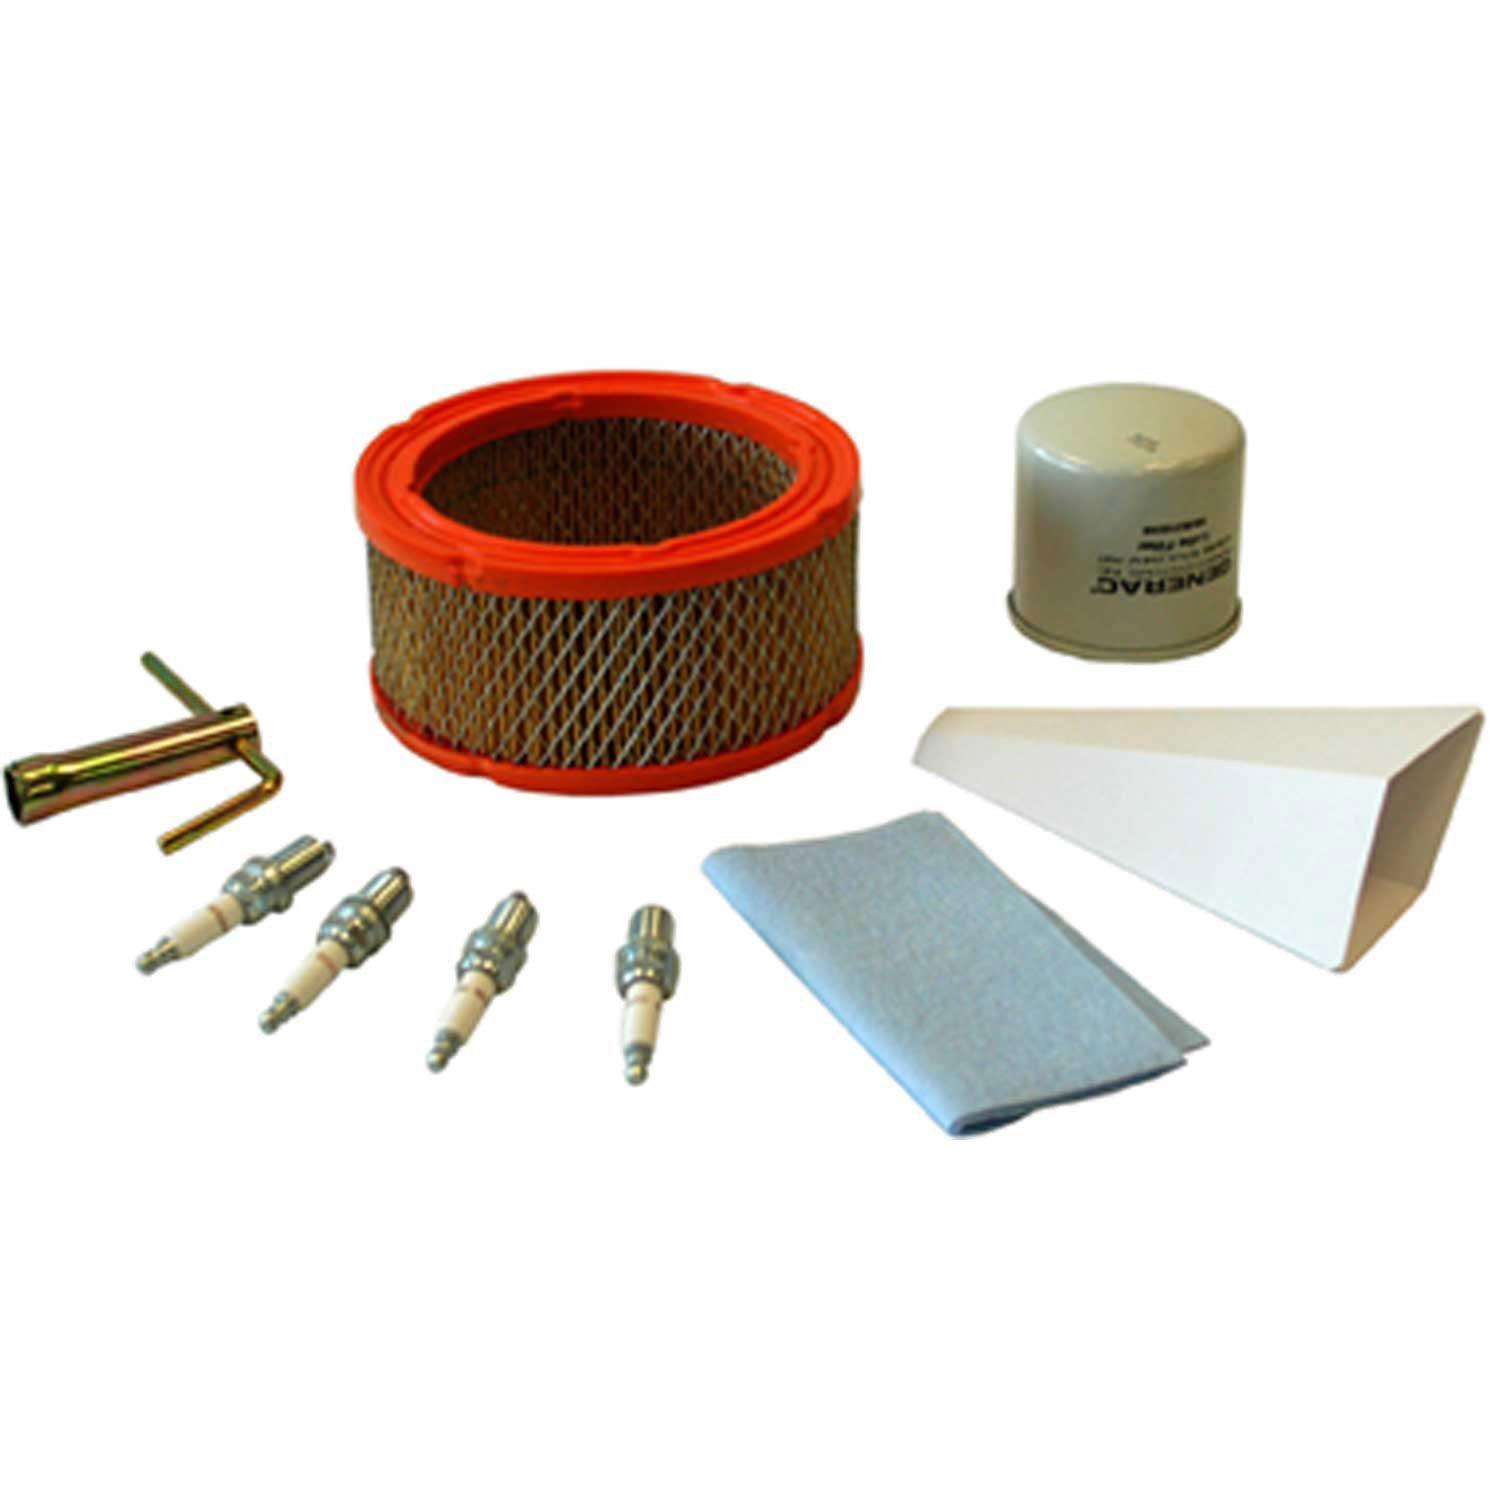 Generac 5655 Maintenance Kit for Liquid-Cooled Standby Generators with 1.6L Engine